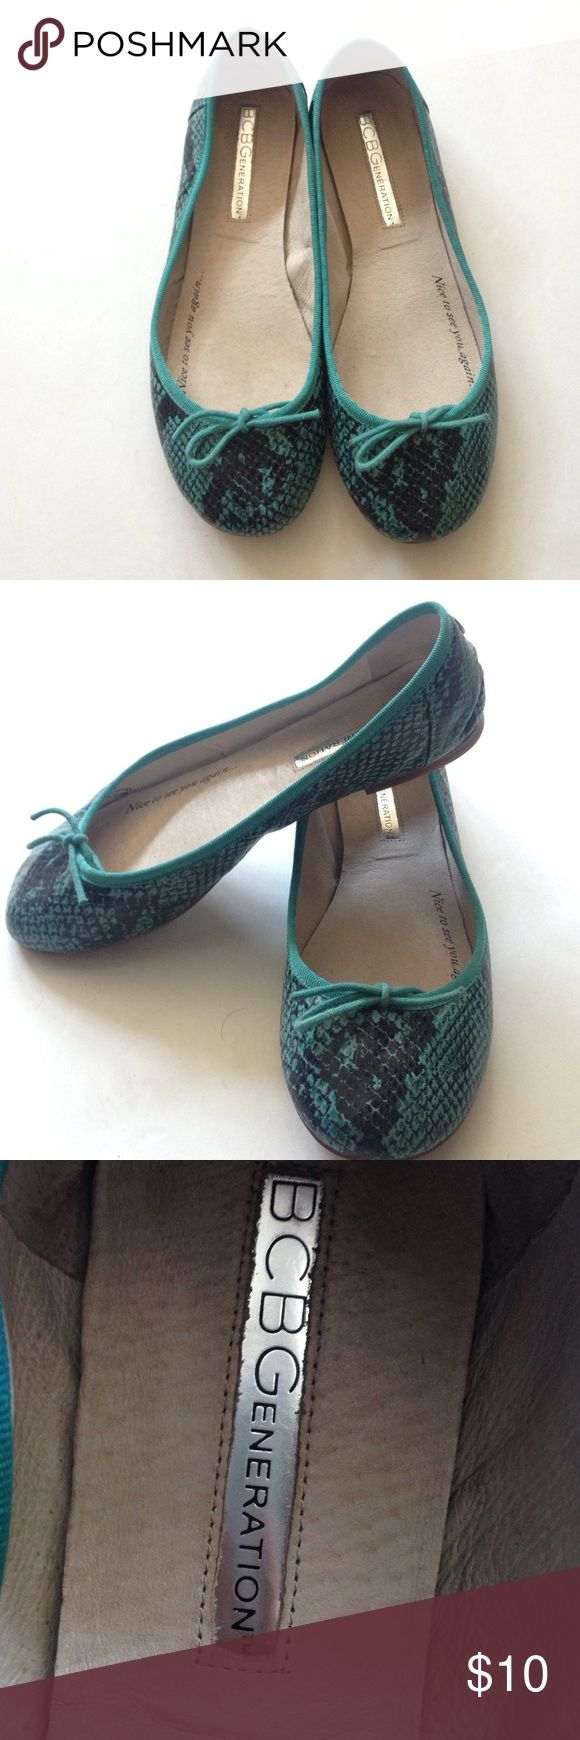 Snake Print Teal Flats with Bow Teal flats. Snake print. Very good condition. Light and comfortable. Worn a couple of times. BCBGeneration Shoes Flats & Loafers